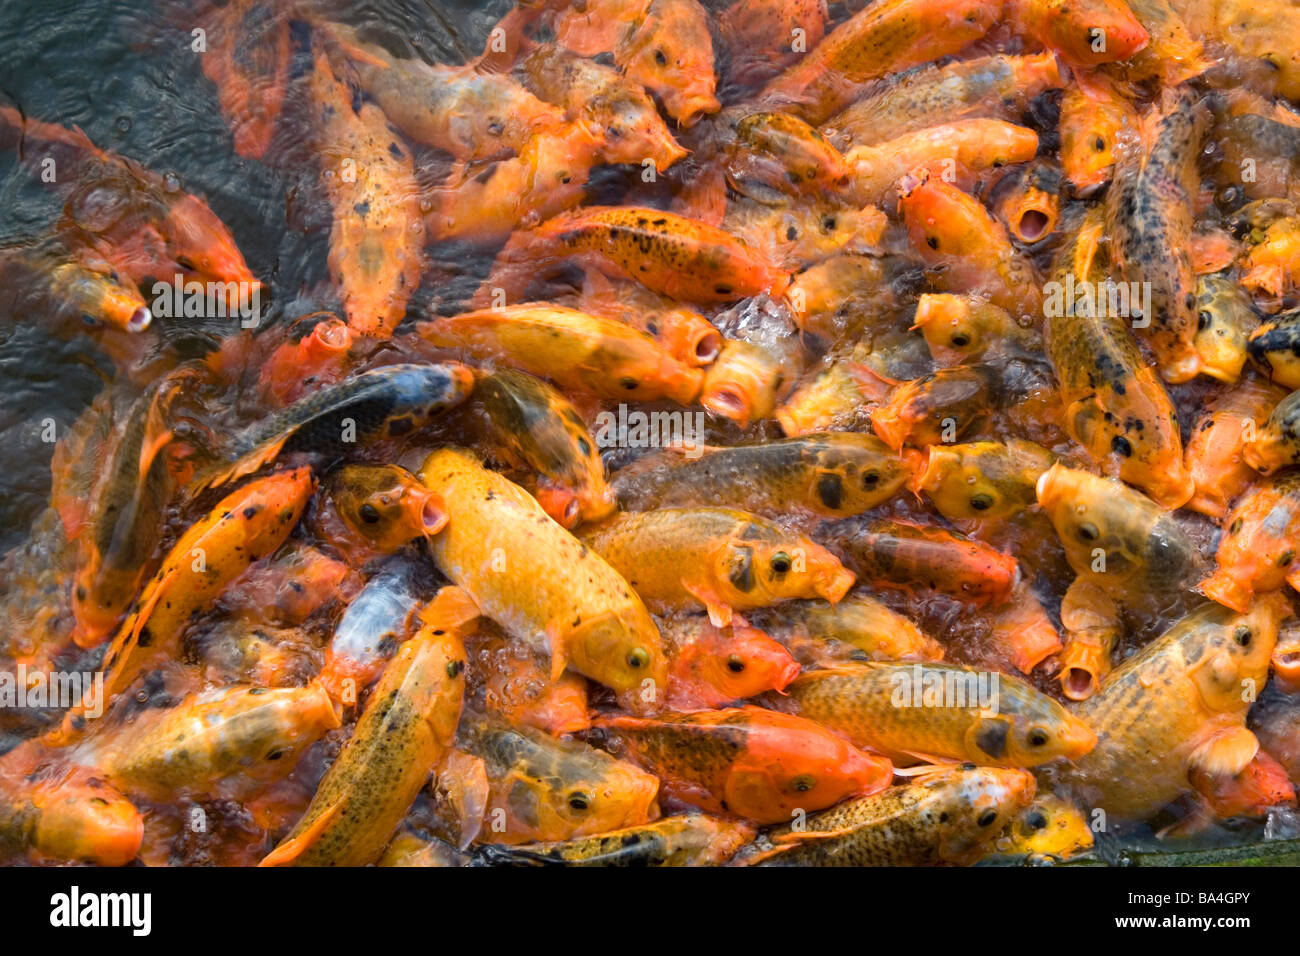 Ornamental koi fish in a pond at the imperial citadel of for Ornamental fish for pond